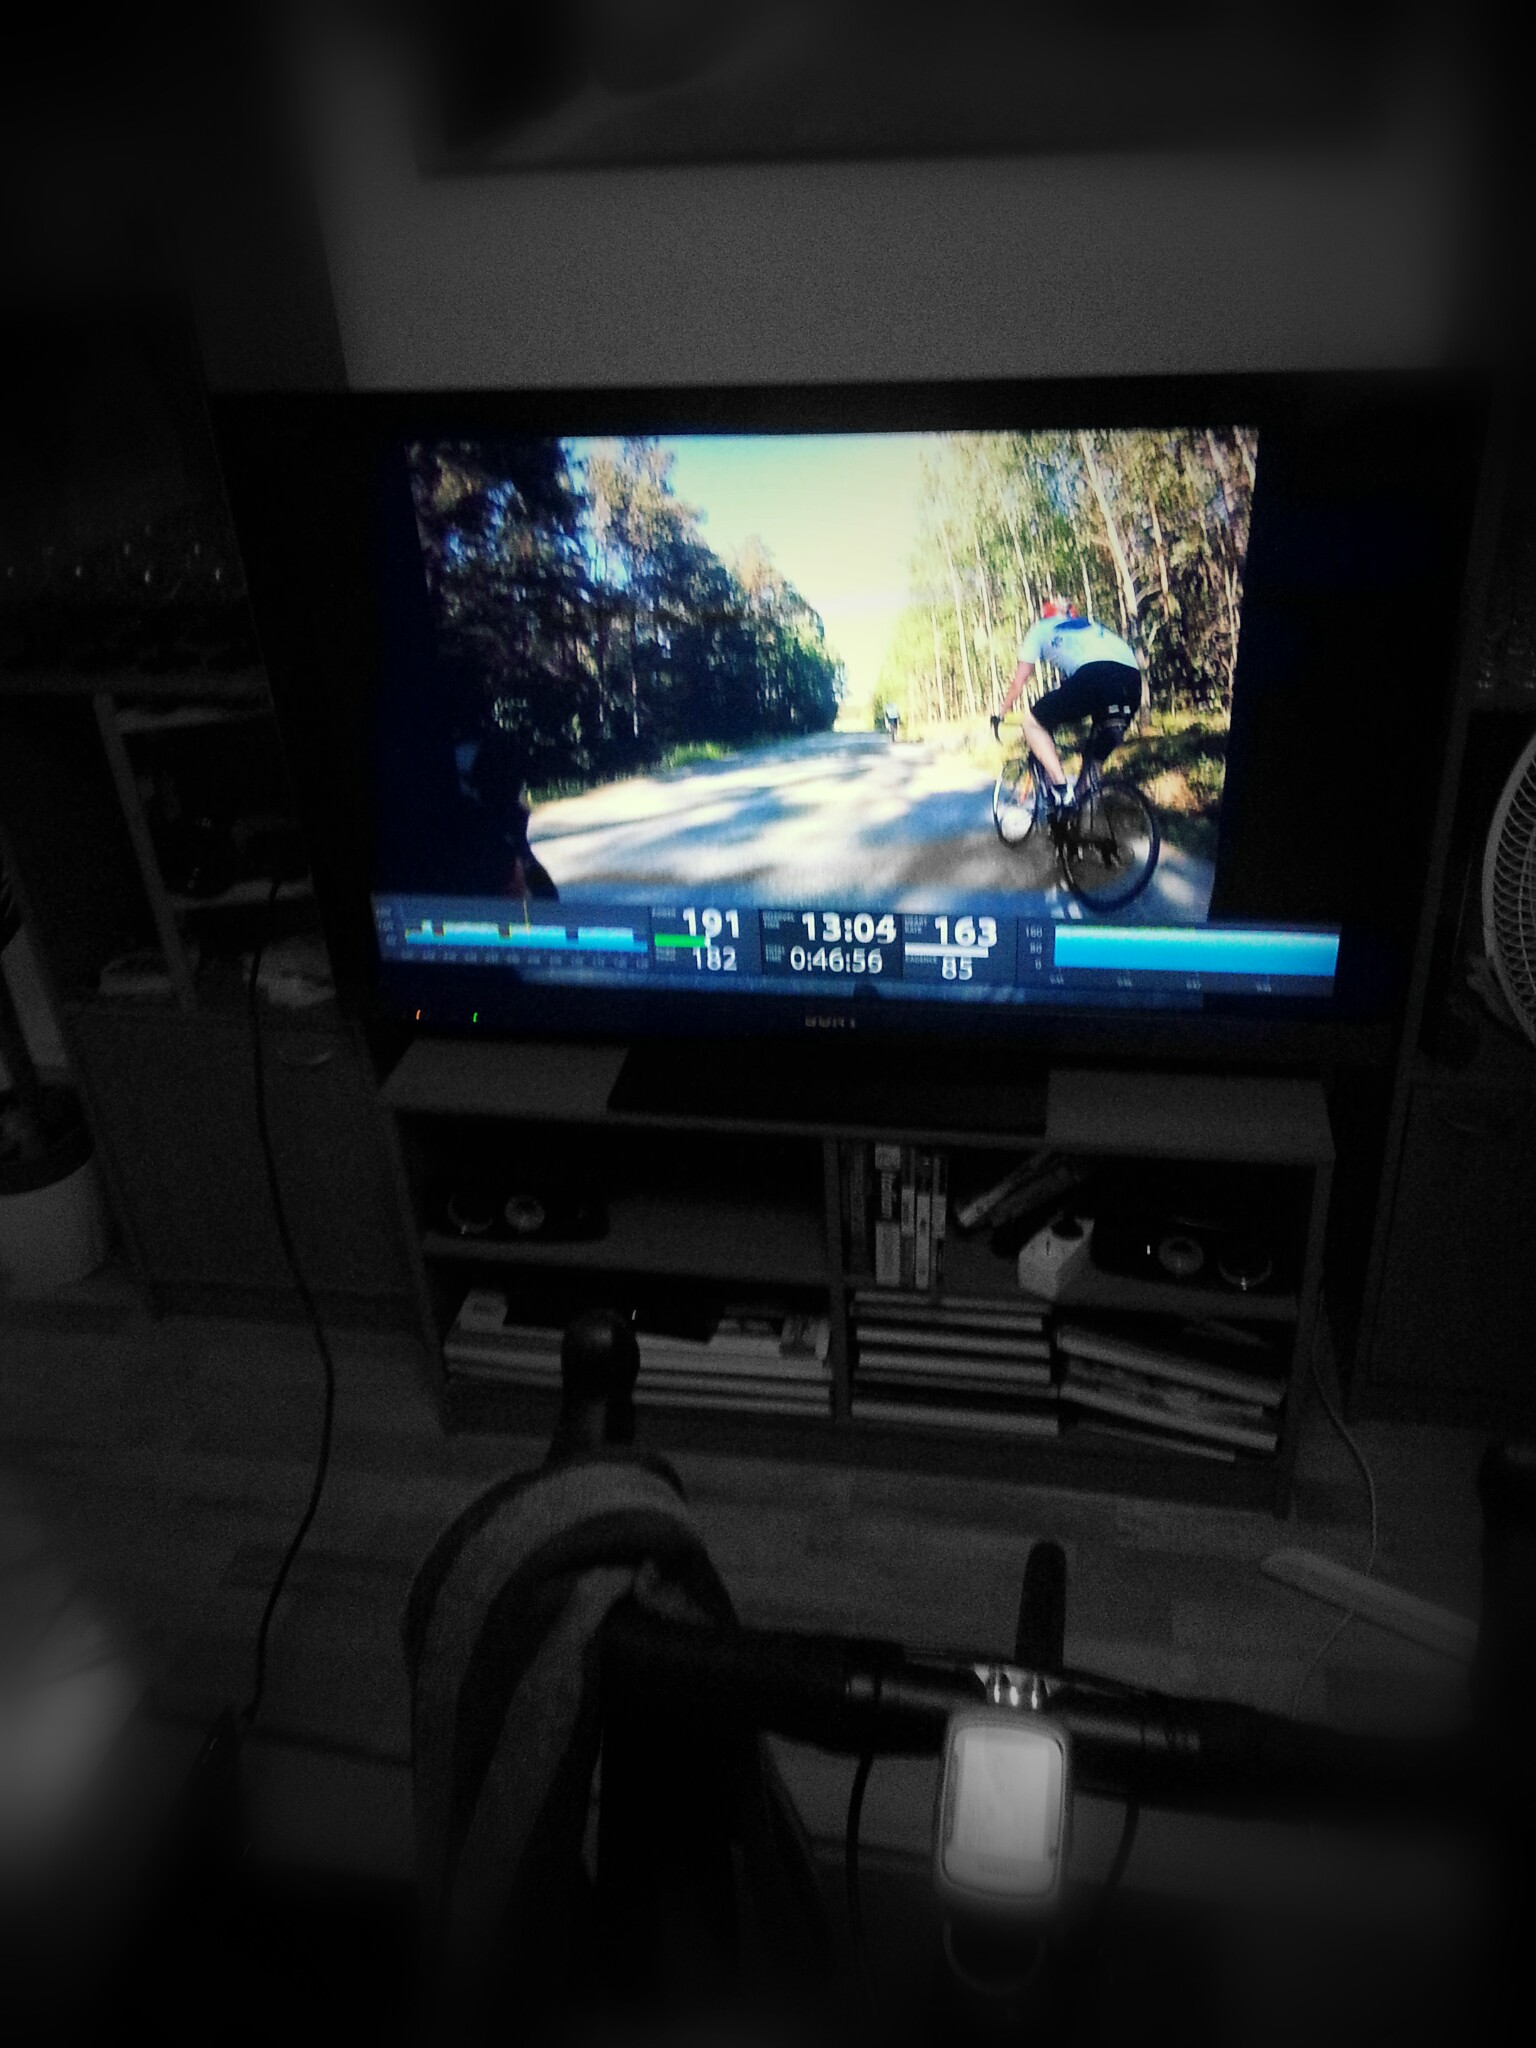 My setup using Kurt Kinetic trainer and Trainerroad software